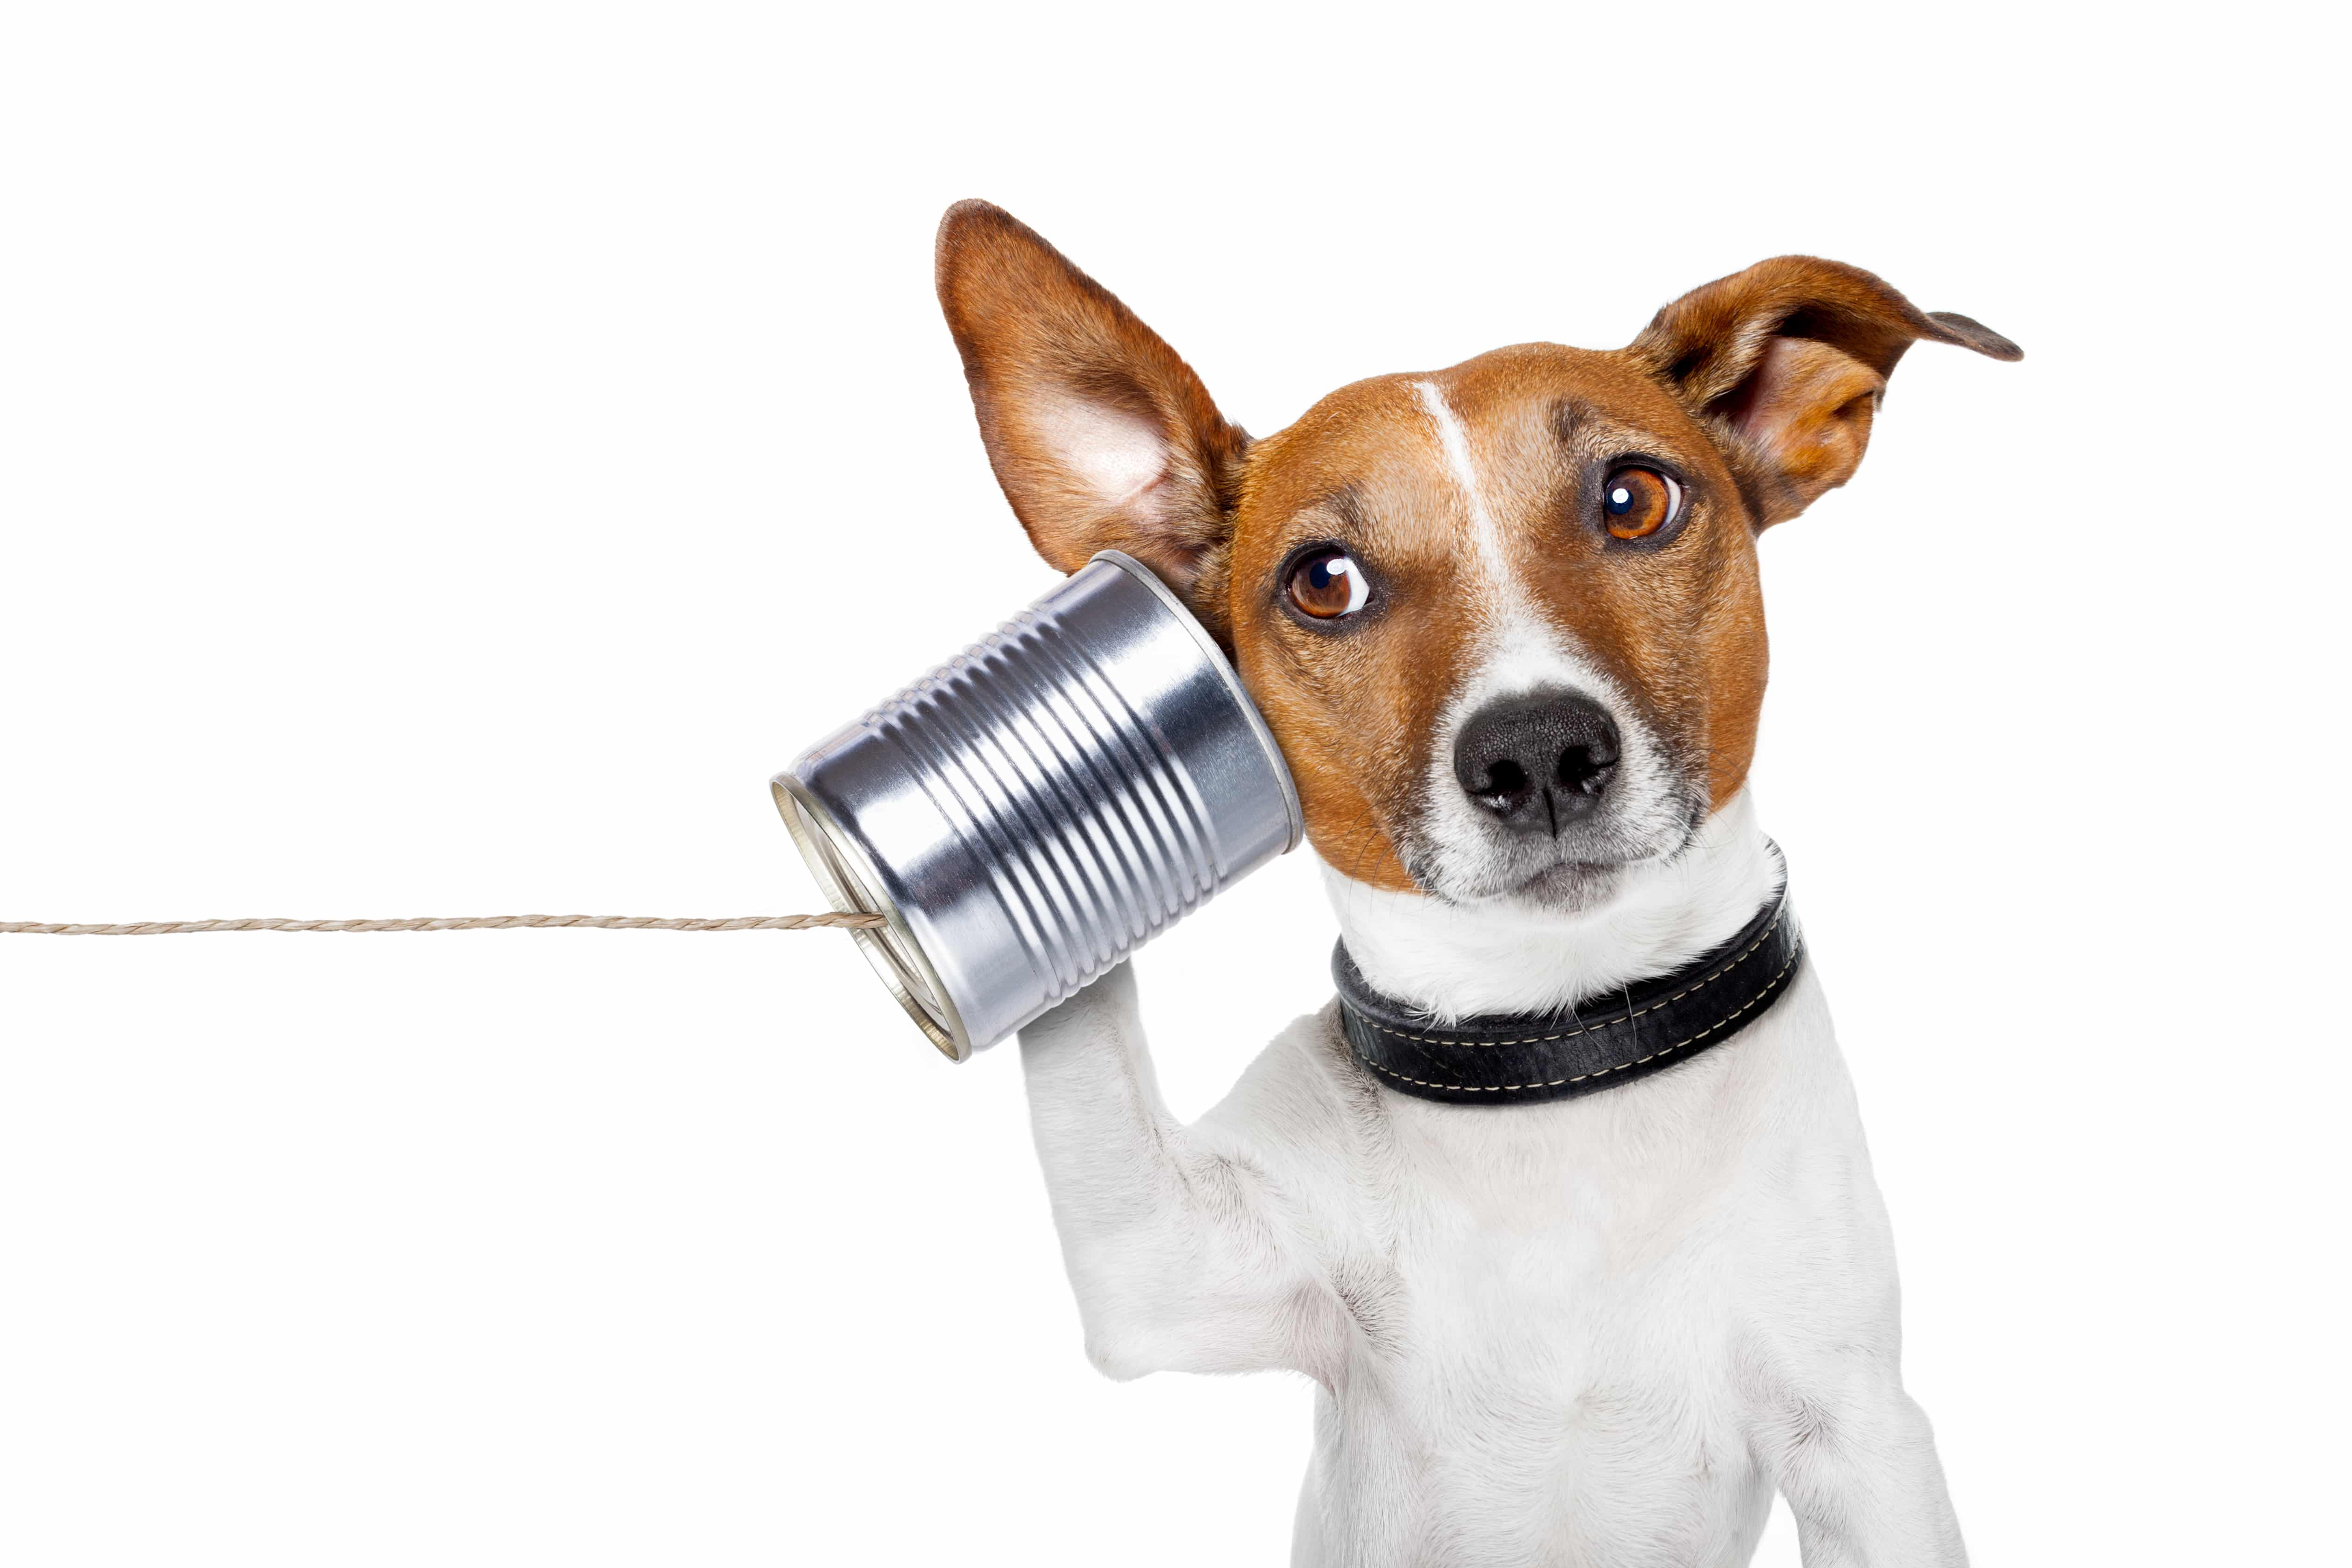 Communicating Effectively is key to understanding - Susan Fitzell